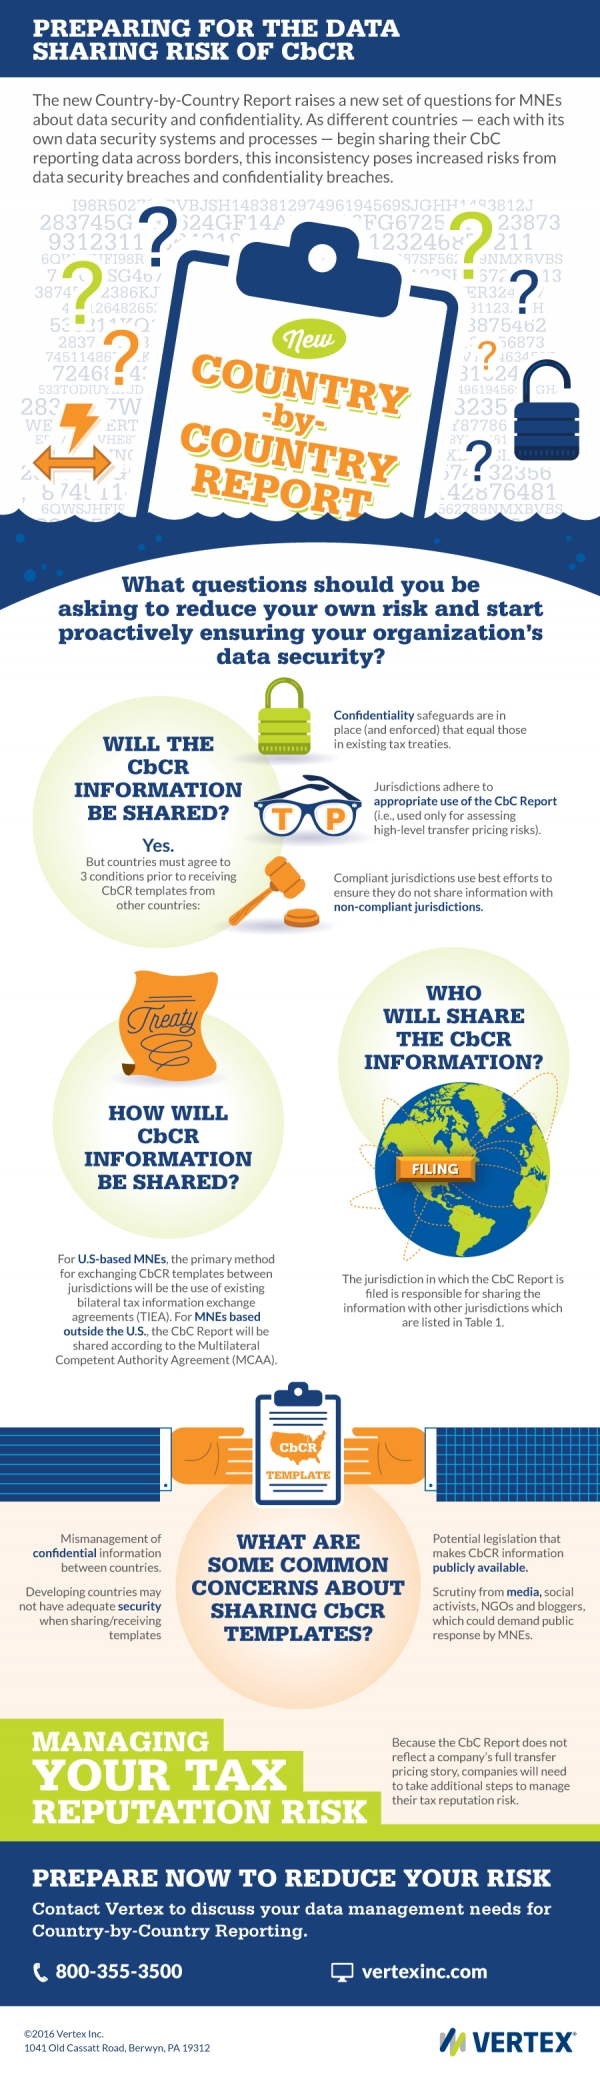 Preparing for the Data Sharing Risk of CbCR Infographic